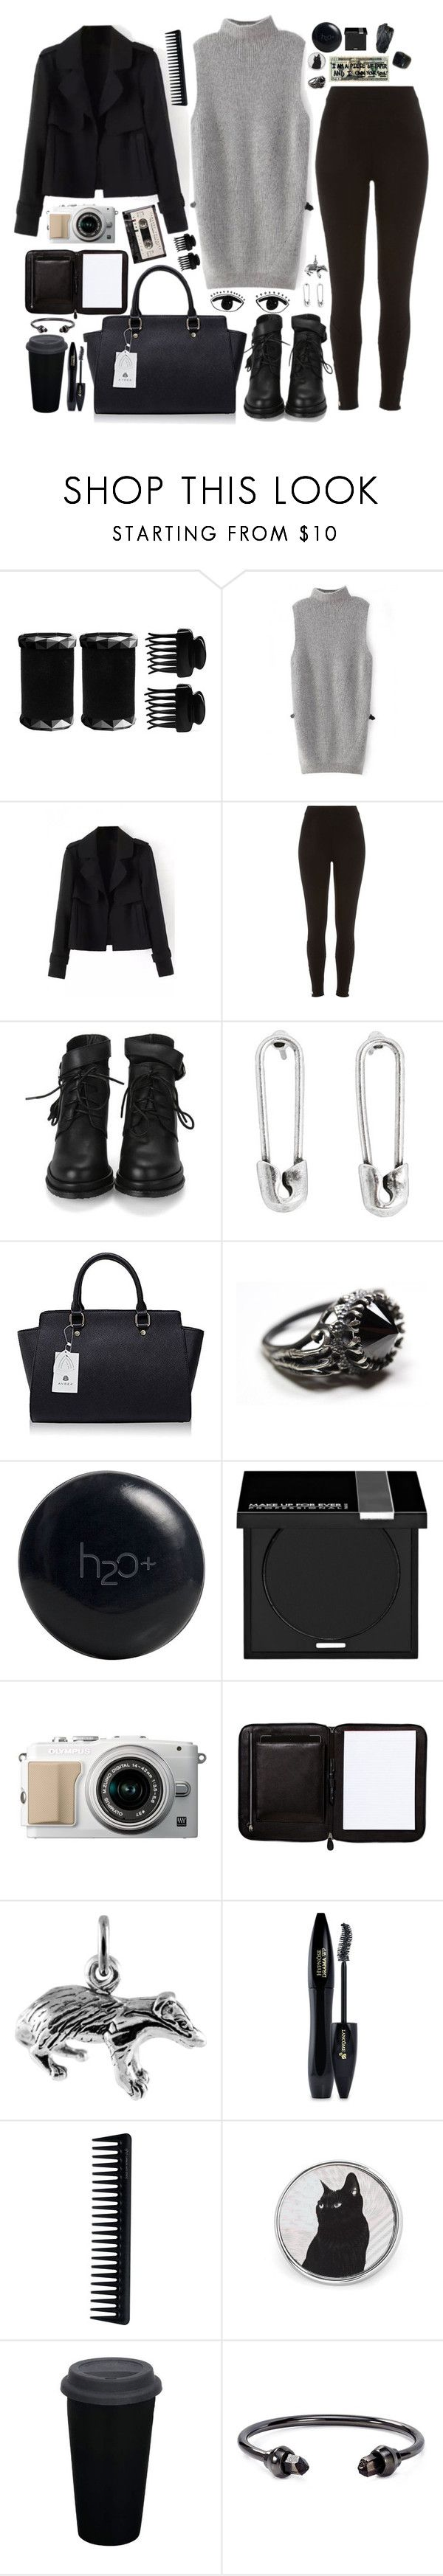 """""""LUCLUC 22"""" by branja ❤ liked on Polyvore featuring T3, River Island, Disney Couture, Handle, H2O+, MAKE UP FOR EVER, Nomadic, Saks Fifth Avenue, GHD and Marc by Marc Jacobs"""